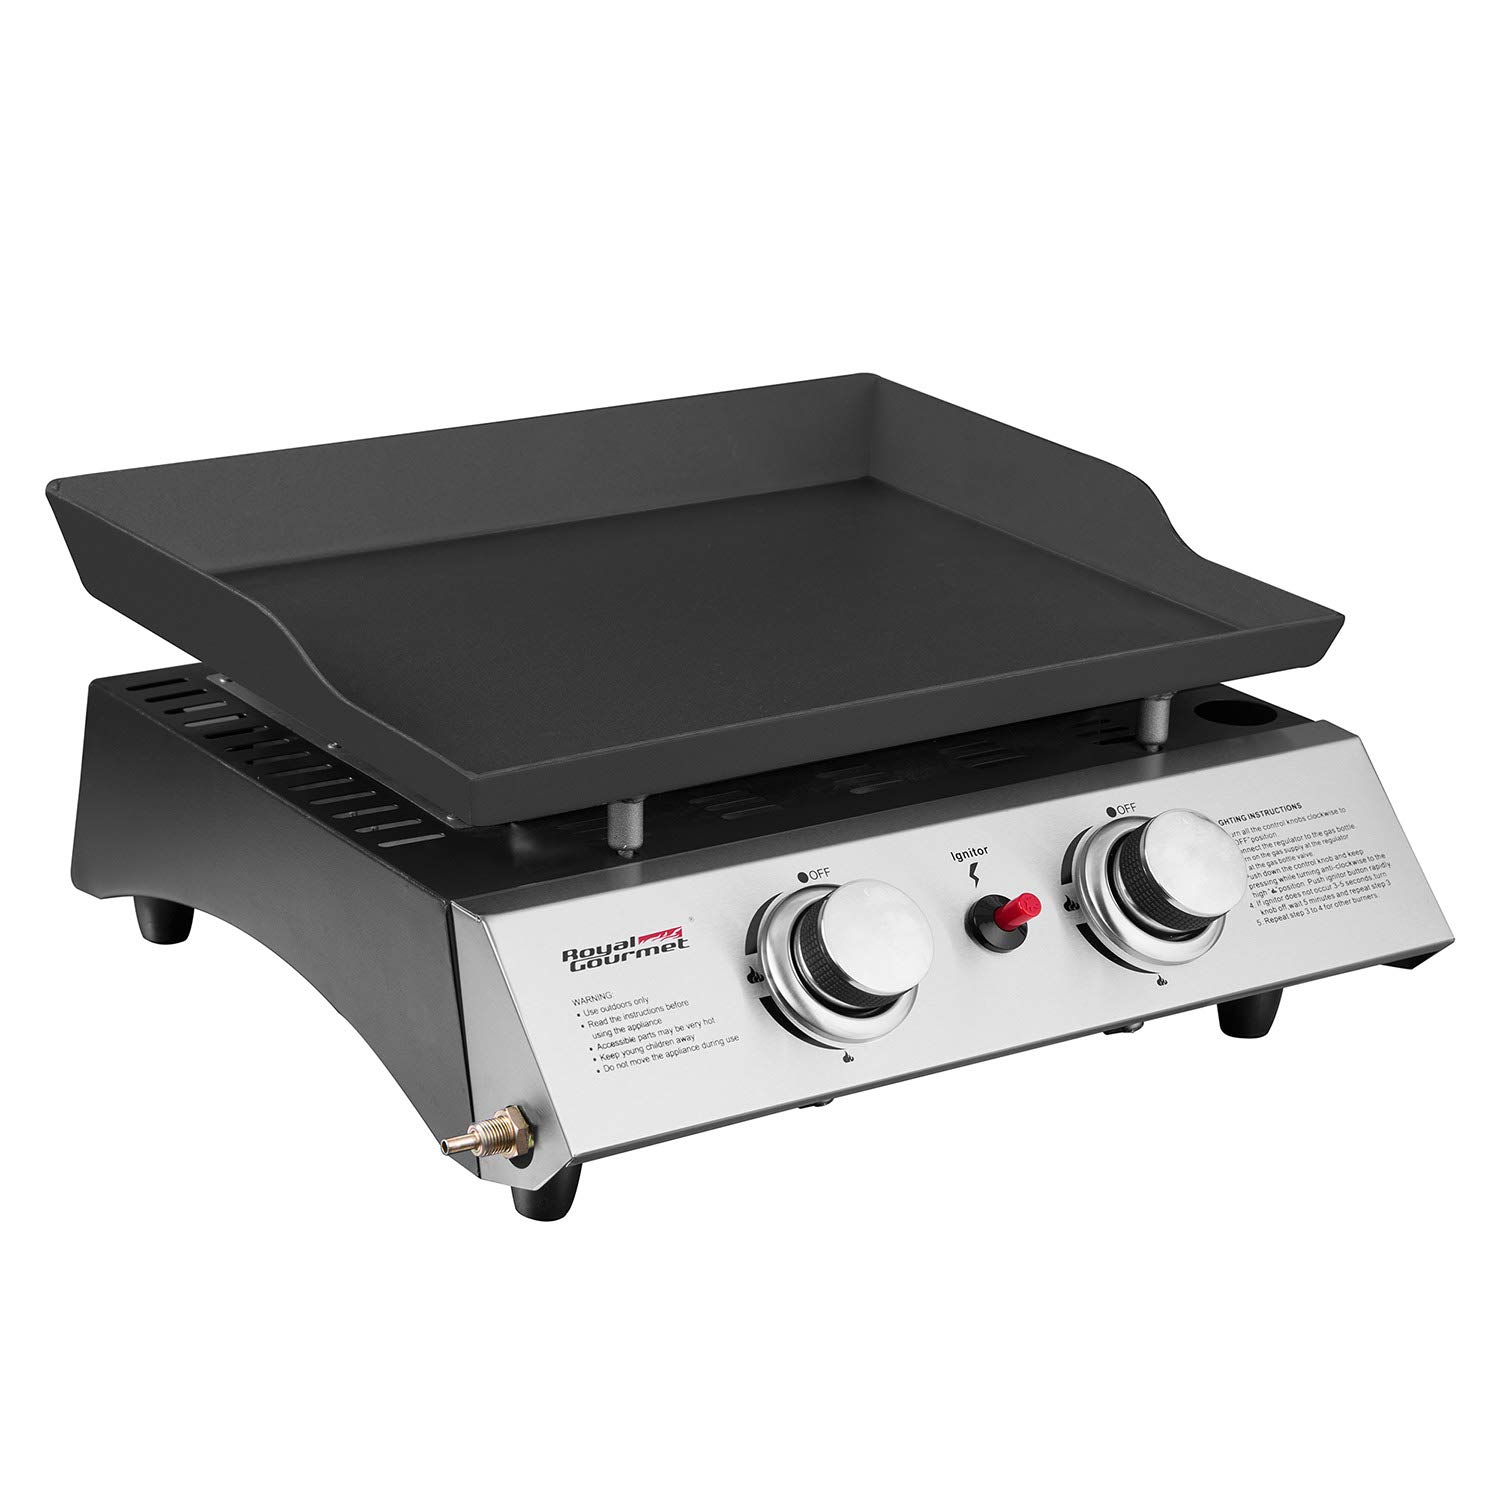 Royal Gourmet Portable 2 Burner Propane Gas Grill Griddle Pd1201 by Royal Gourmet